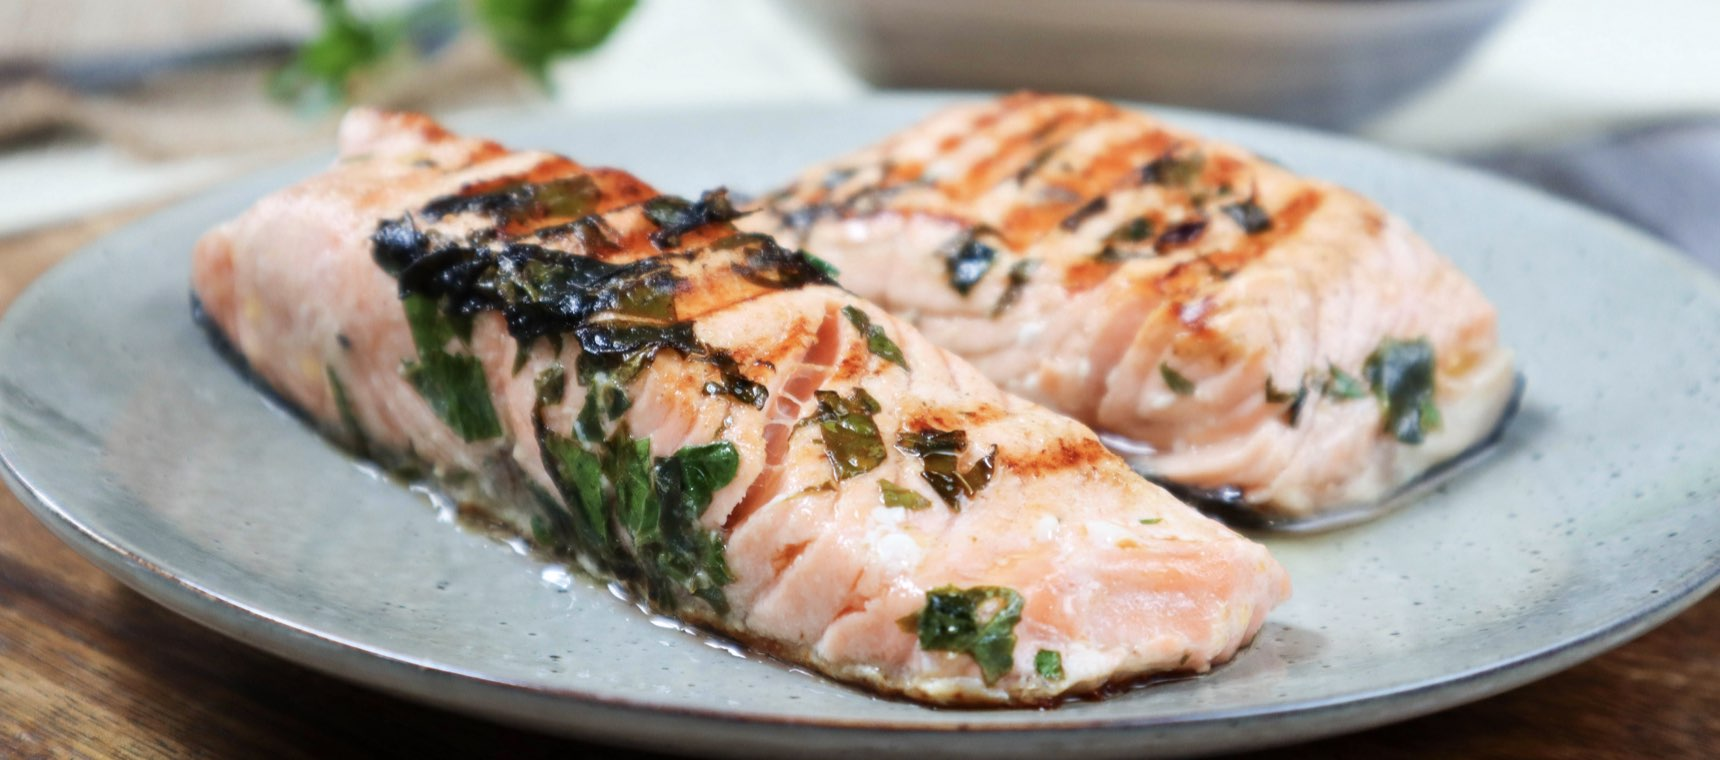 Low FODMAP Grilled Salmon